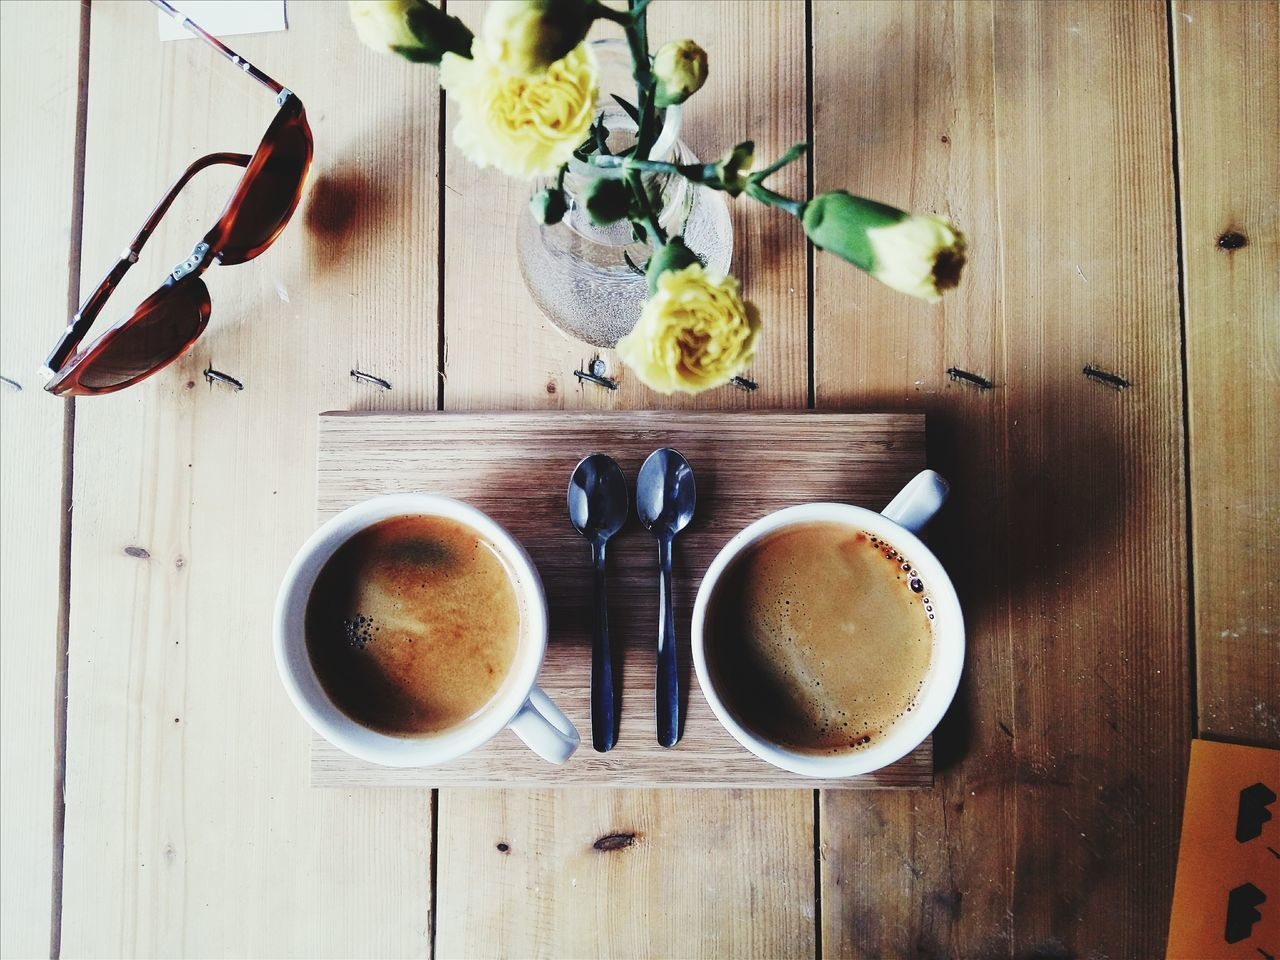 EyeEm Selects Coffee - Drink Food And Drink Coffee Cup Drink Table Directly Above Wood - Material High Angle View Freshness Indoors  Refreshment No People Studio Shot Food Healthy Eating Flower Sweet Food Day Close-up Ready-to-eat The Week Of Eyeem EyeEm Gallery Light And Shadow.